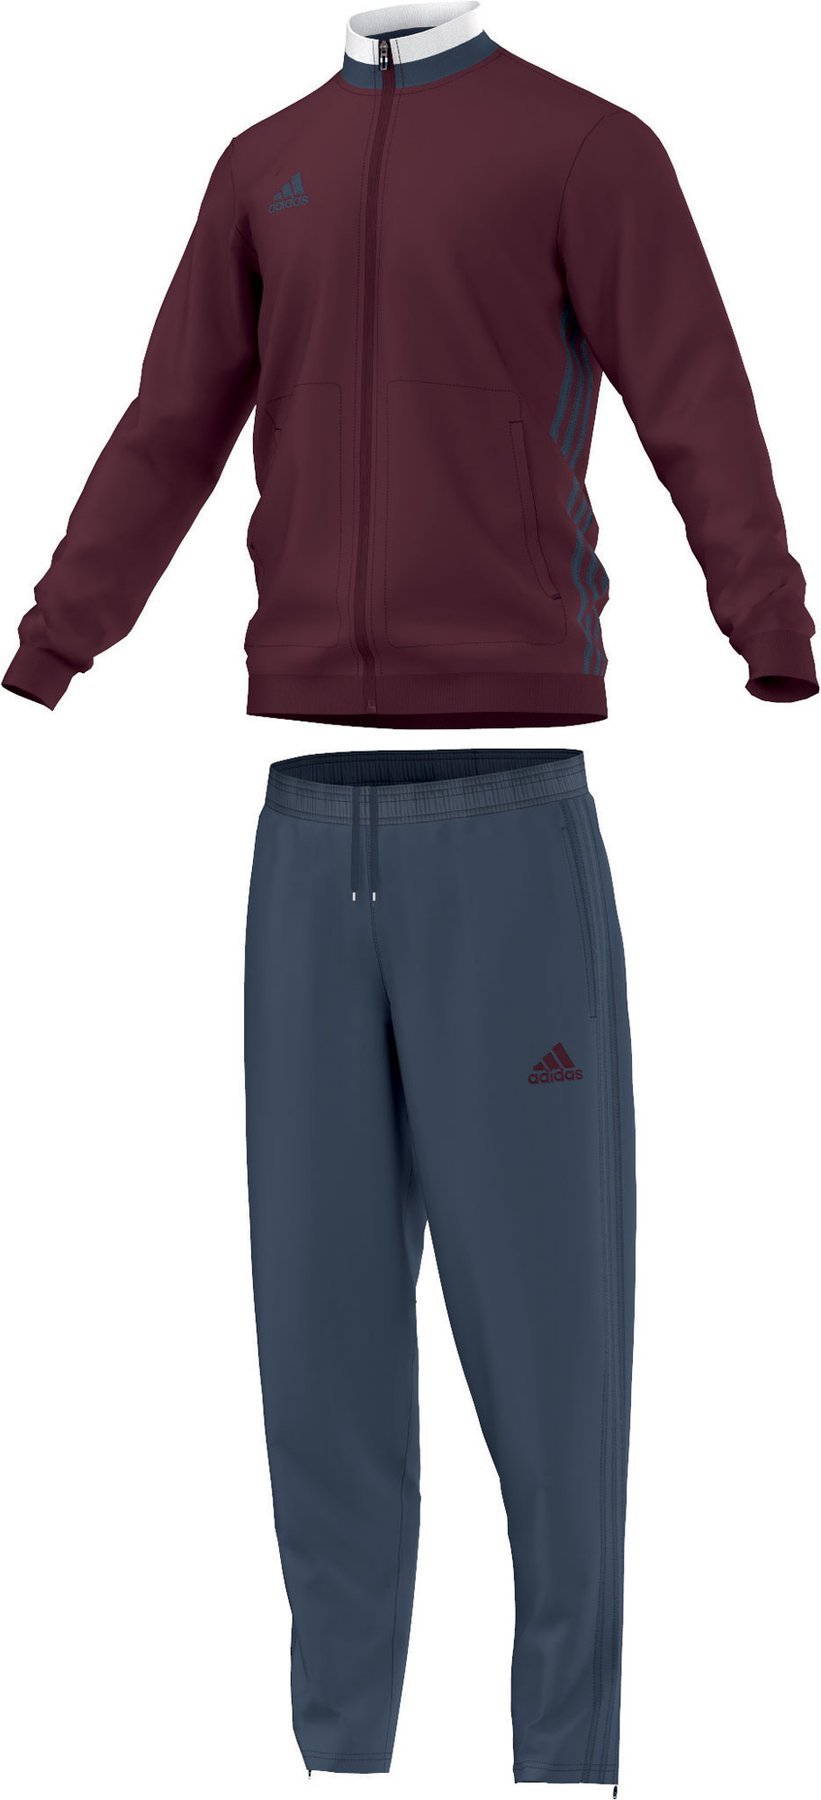 best online super popular excellent quality Adidas Trainingsanzug Herren